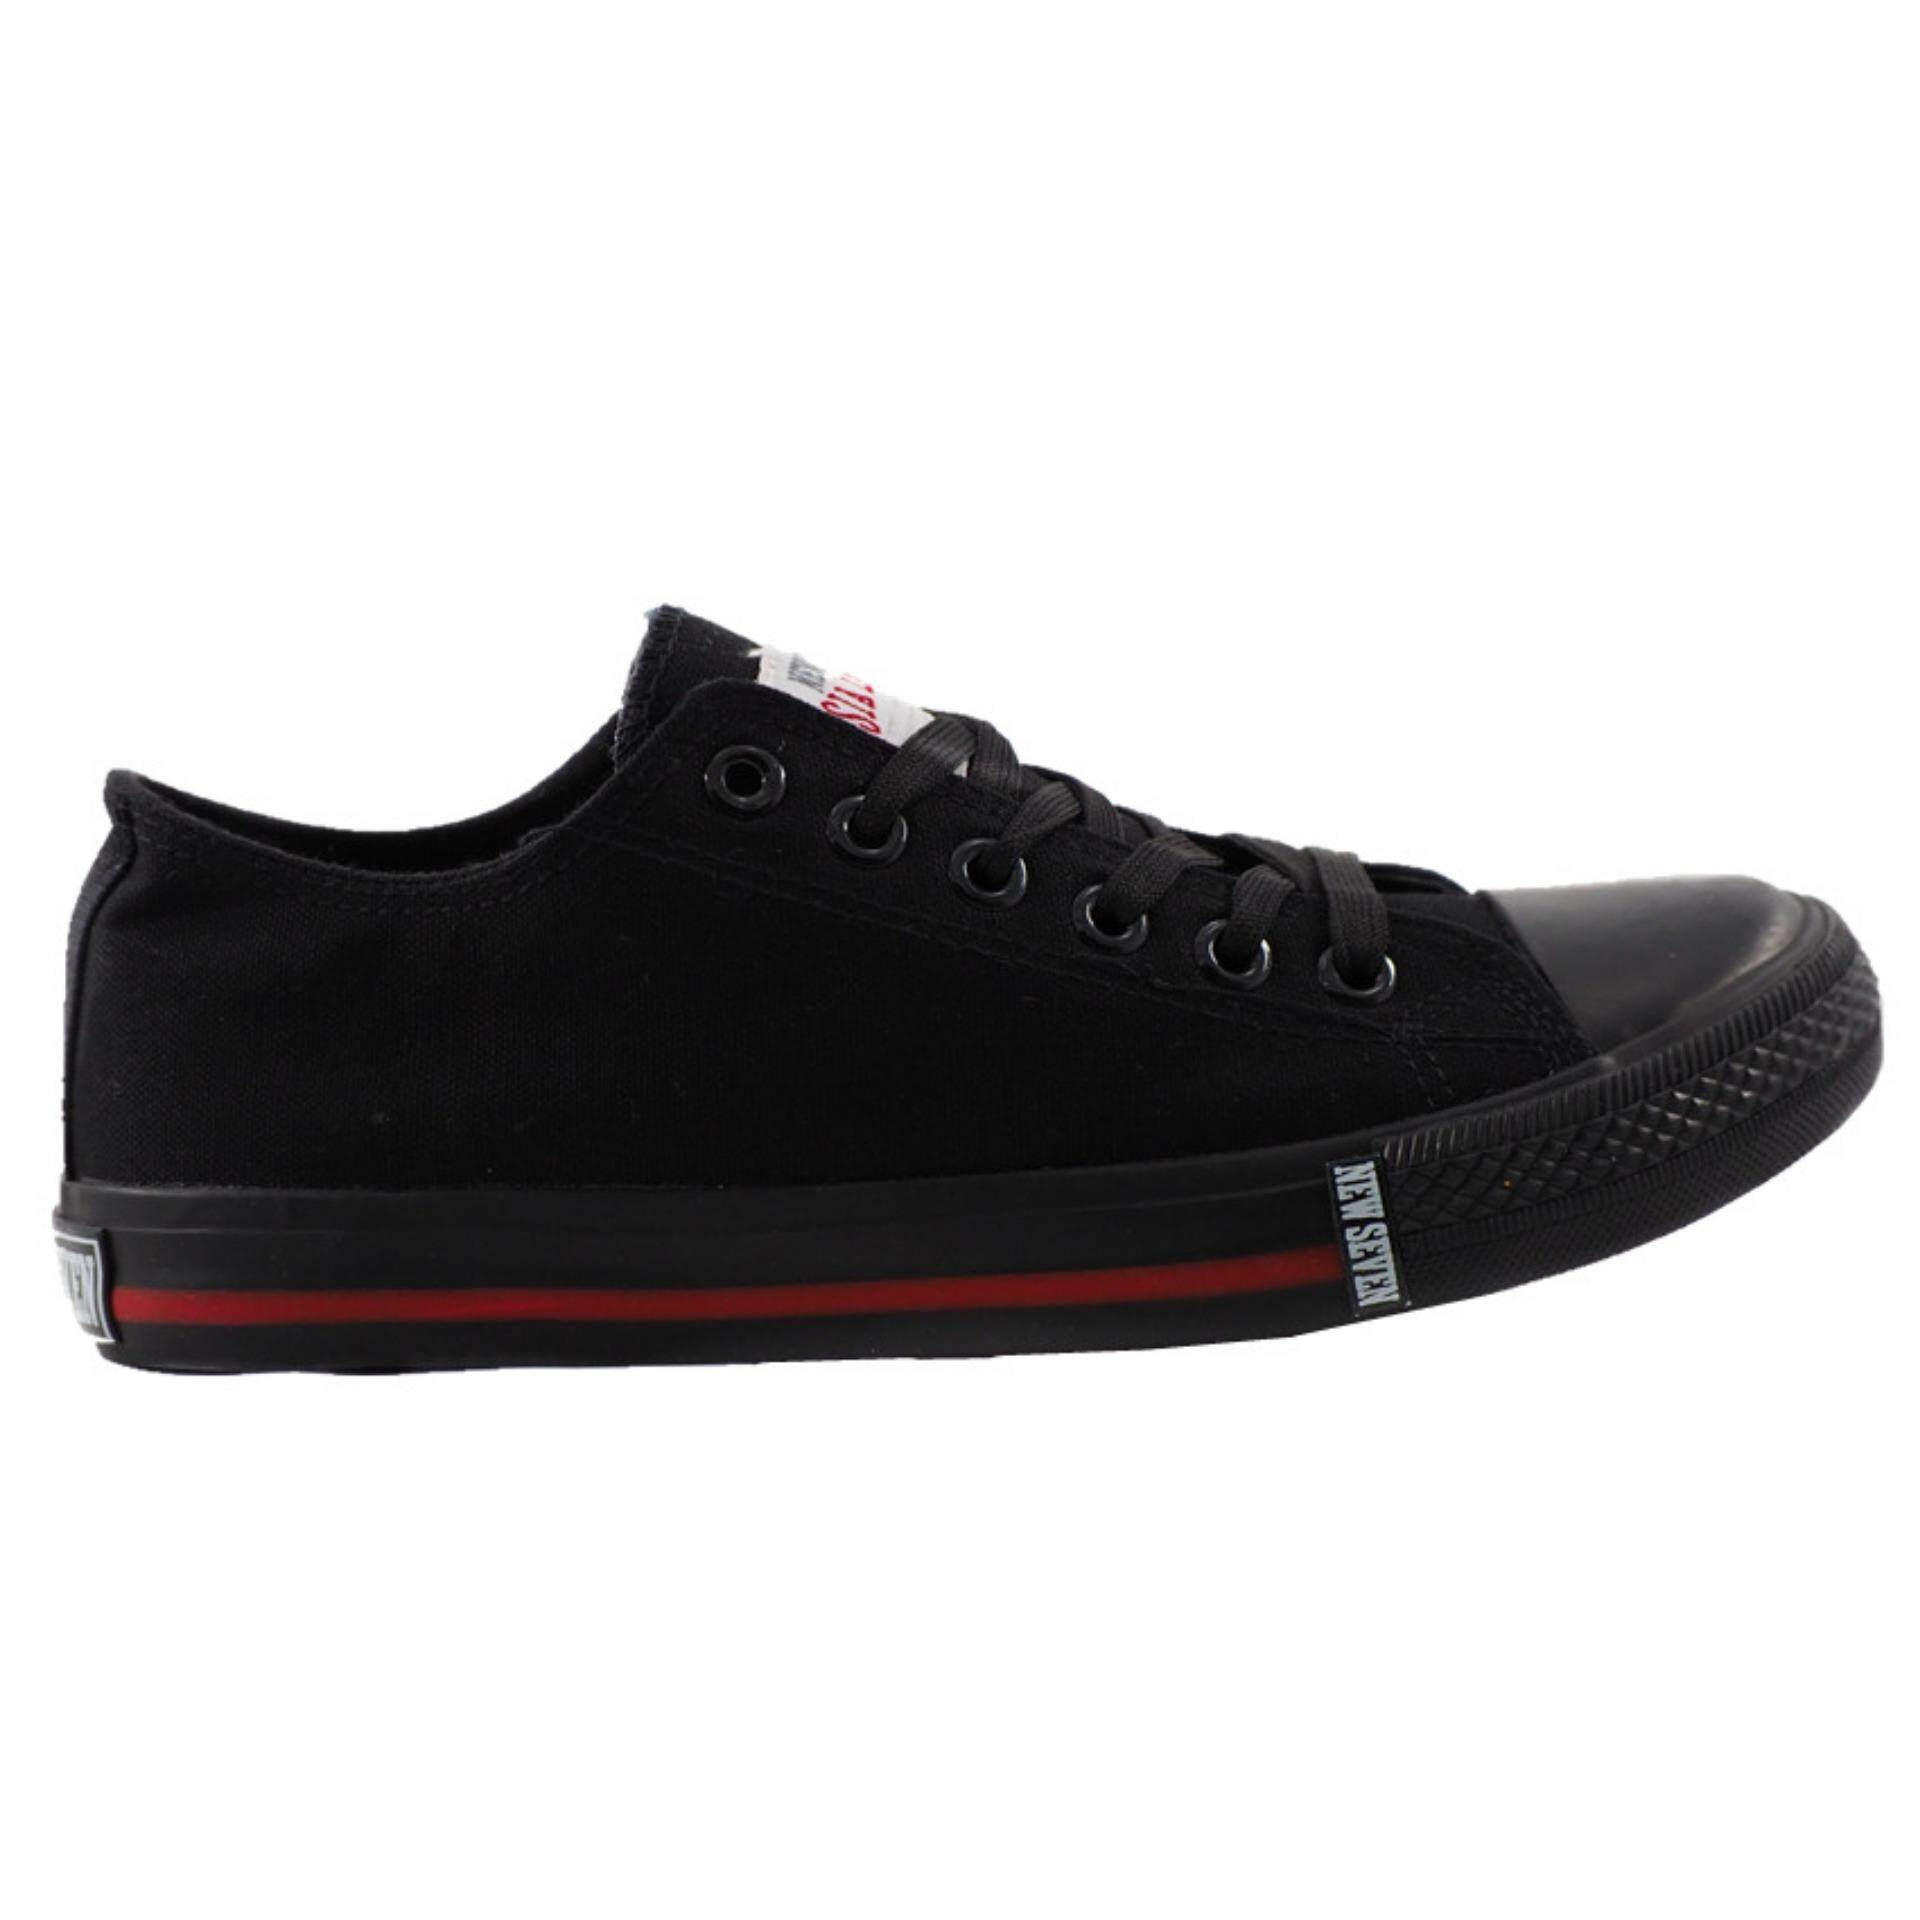 New Seven School Shoes Black - BR468